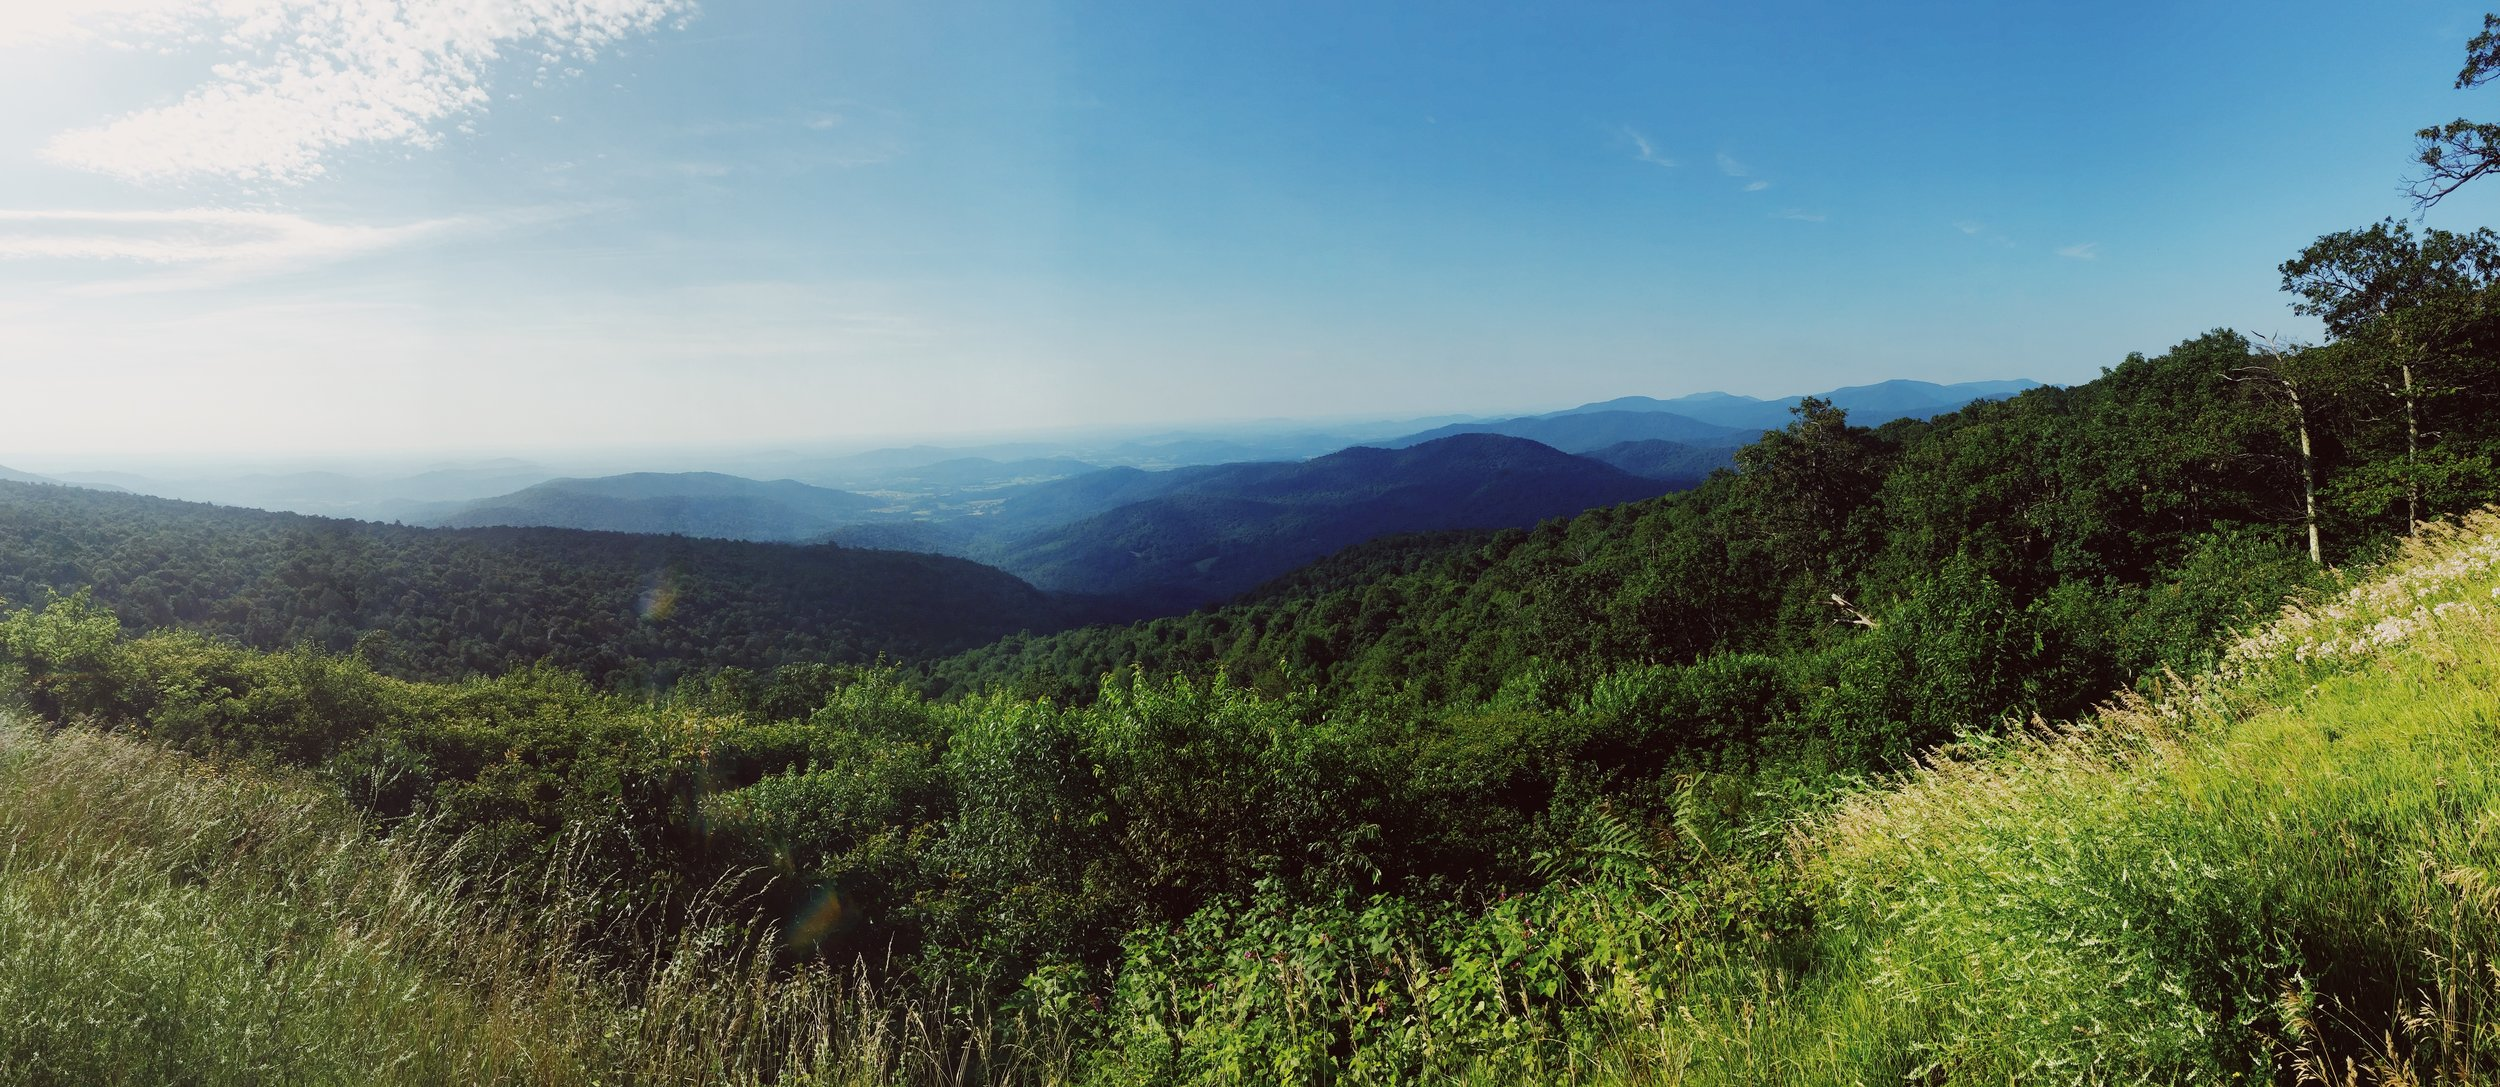 Shenandoah National Park, July 2019